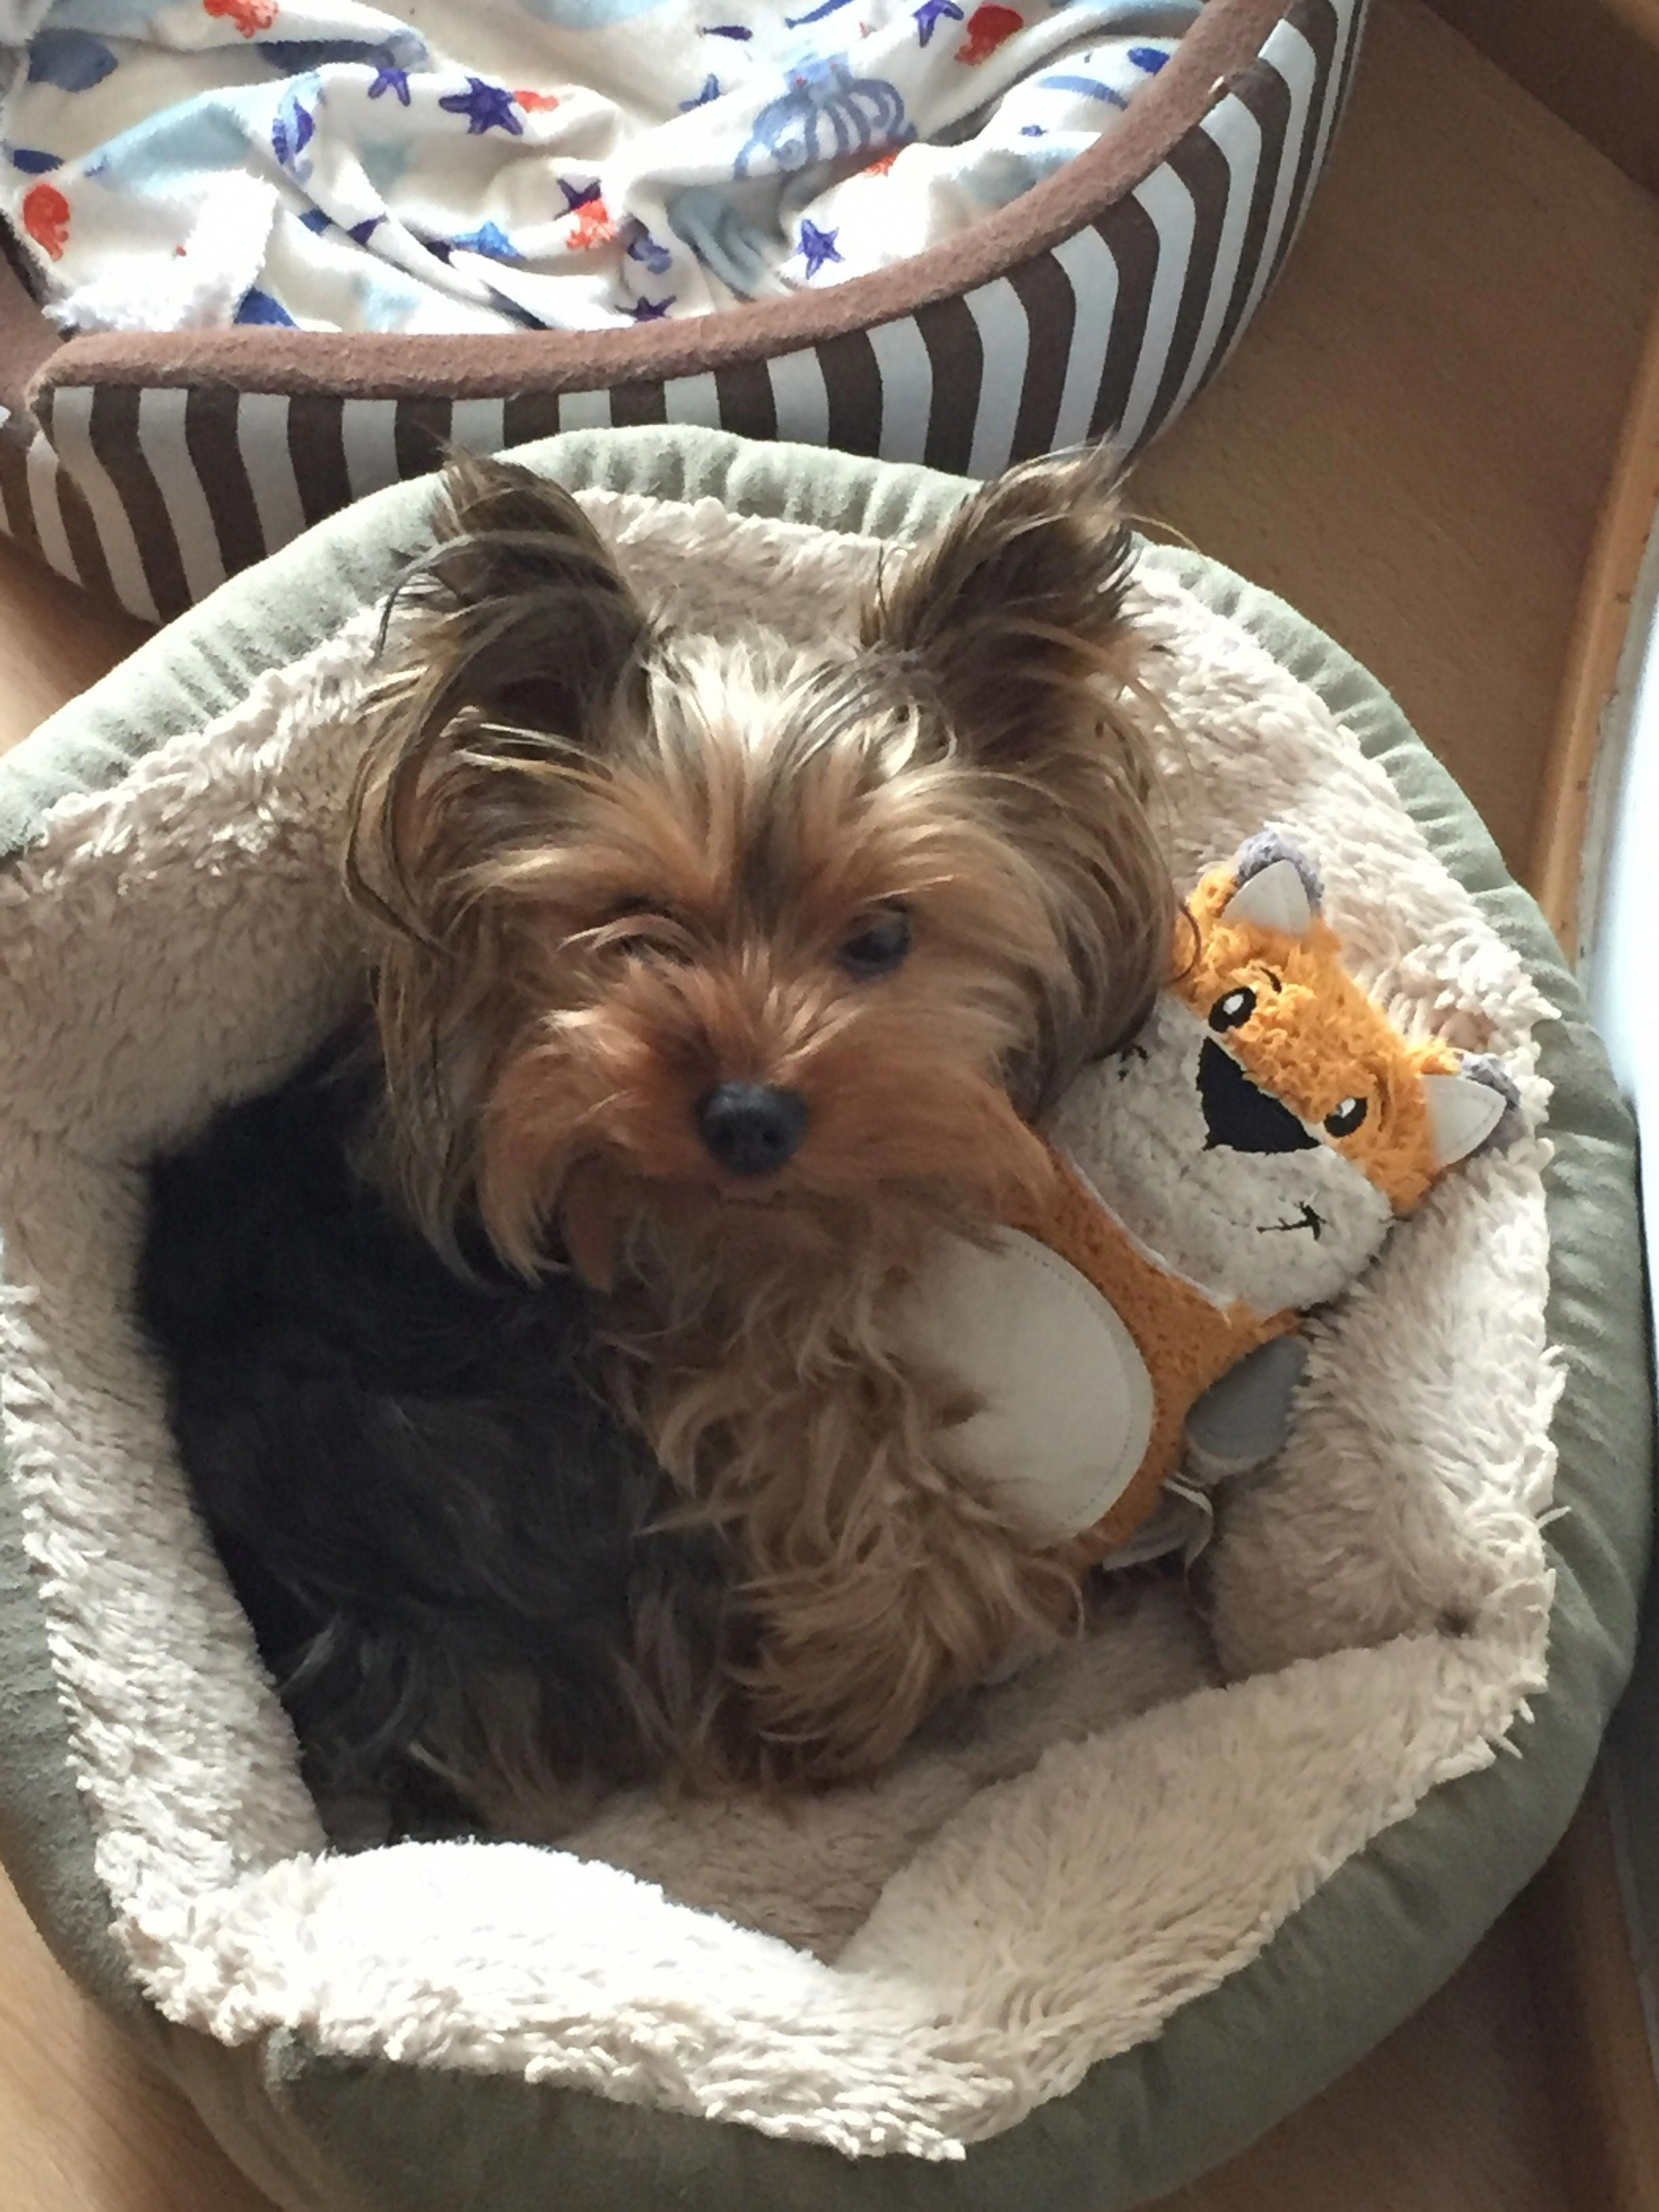 Yorkshire Terrier Energetic And Affectionate Yorkshire Terrier Yorkshire Terrier Dog Yorkshire Terrier Puppies